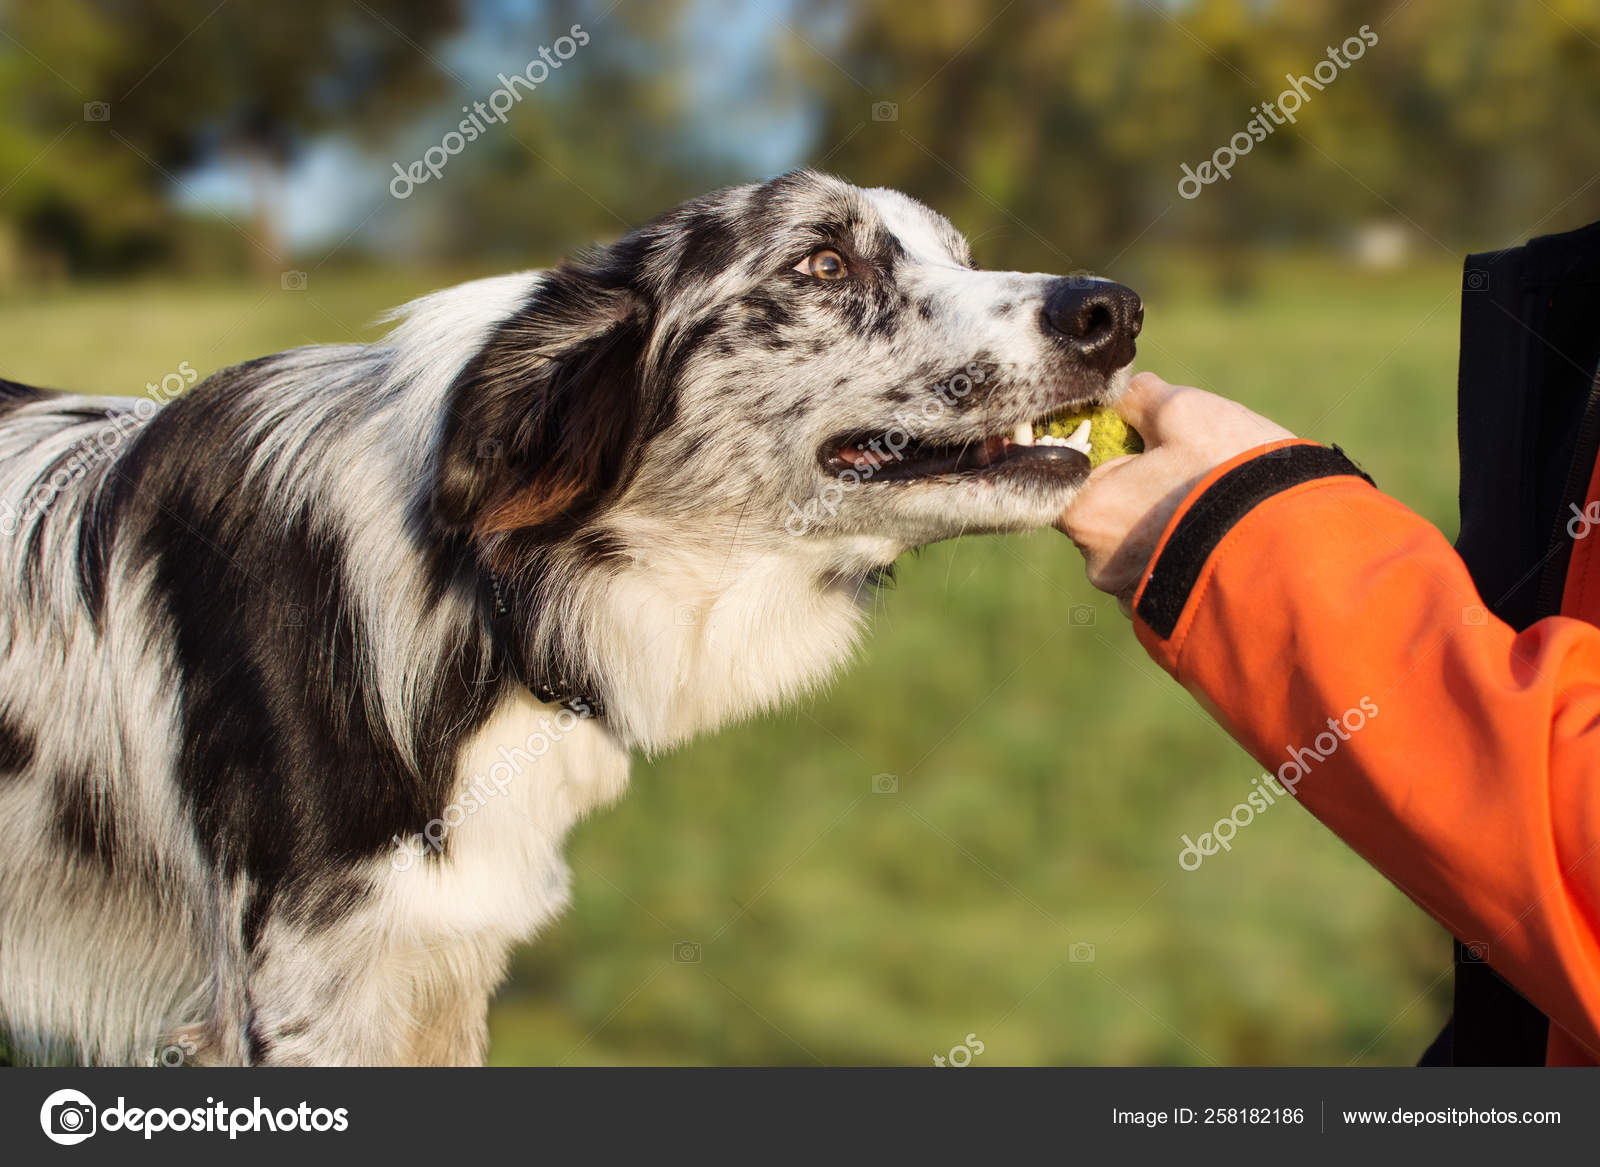 Obedience Dog Concept Border Collie Puppy Brought The Tennis Ba Stock Photo C Smrm1977 258182186